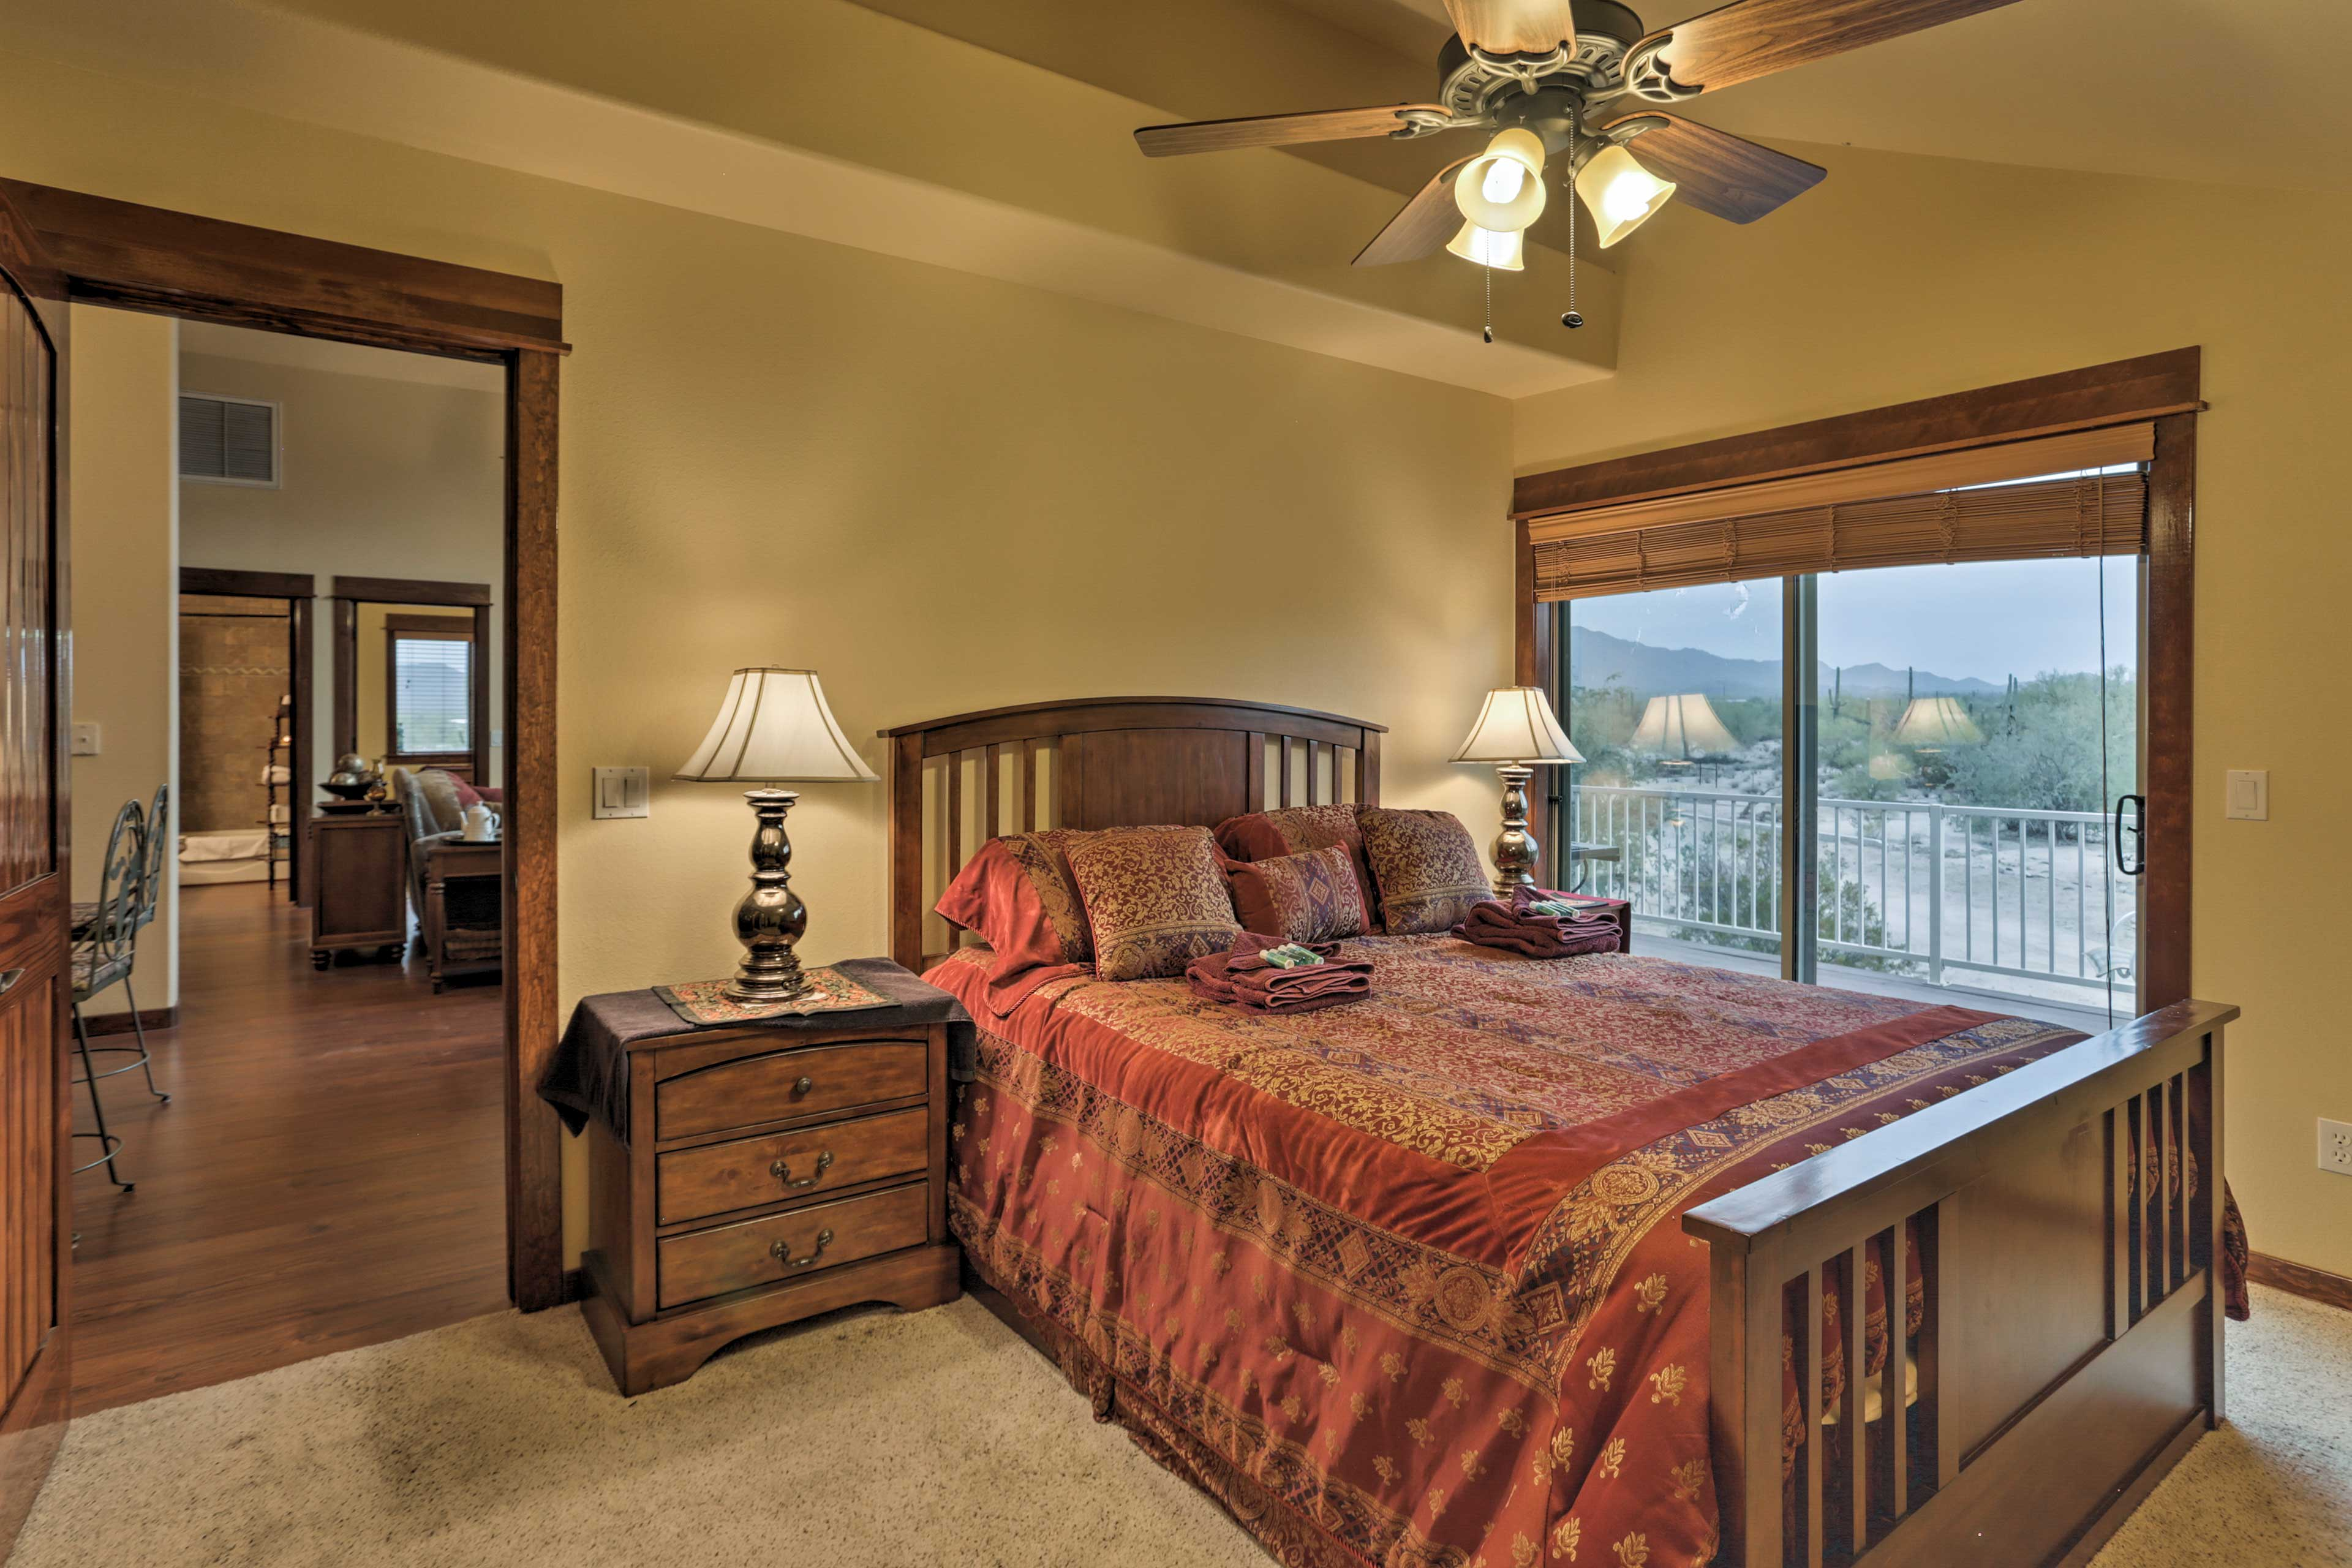 The condo's 2 bedrooms provide 4 guests with comfortable accommodations.